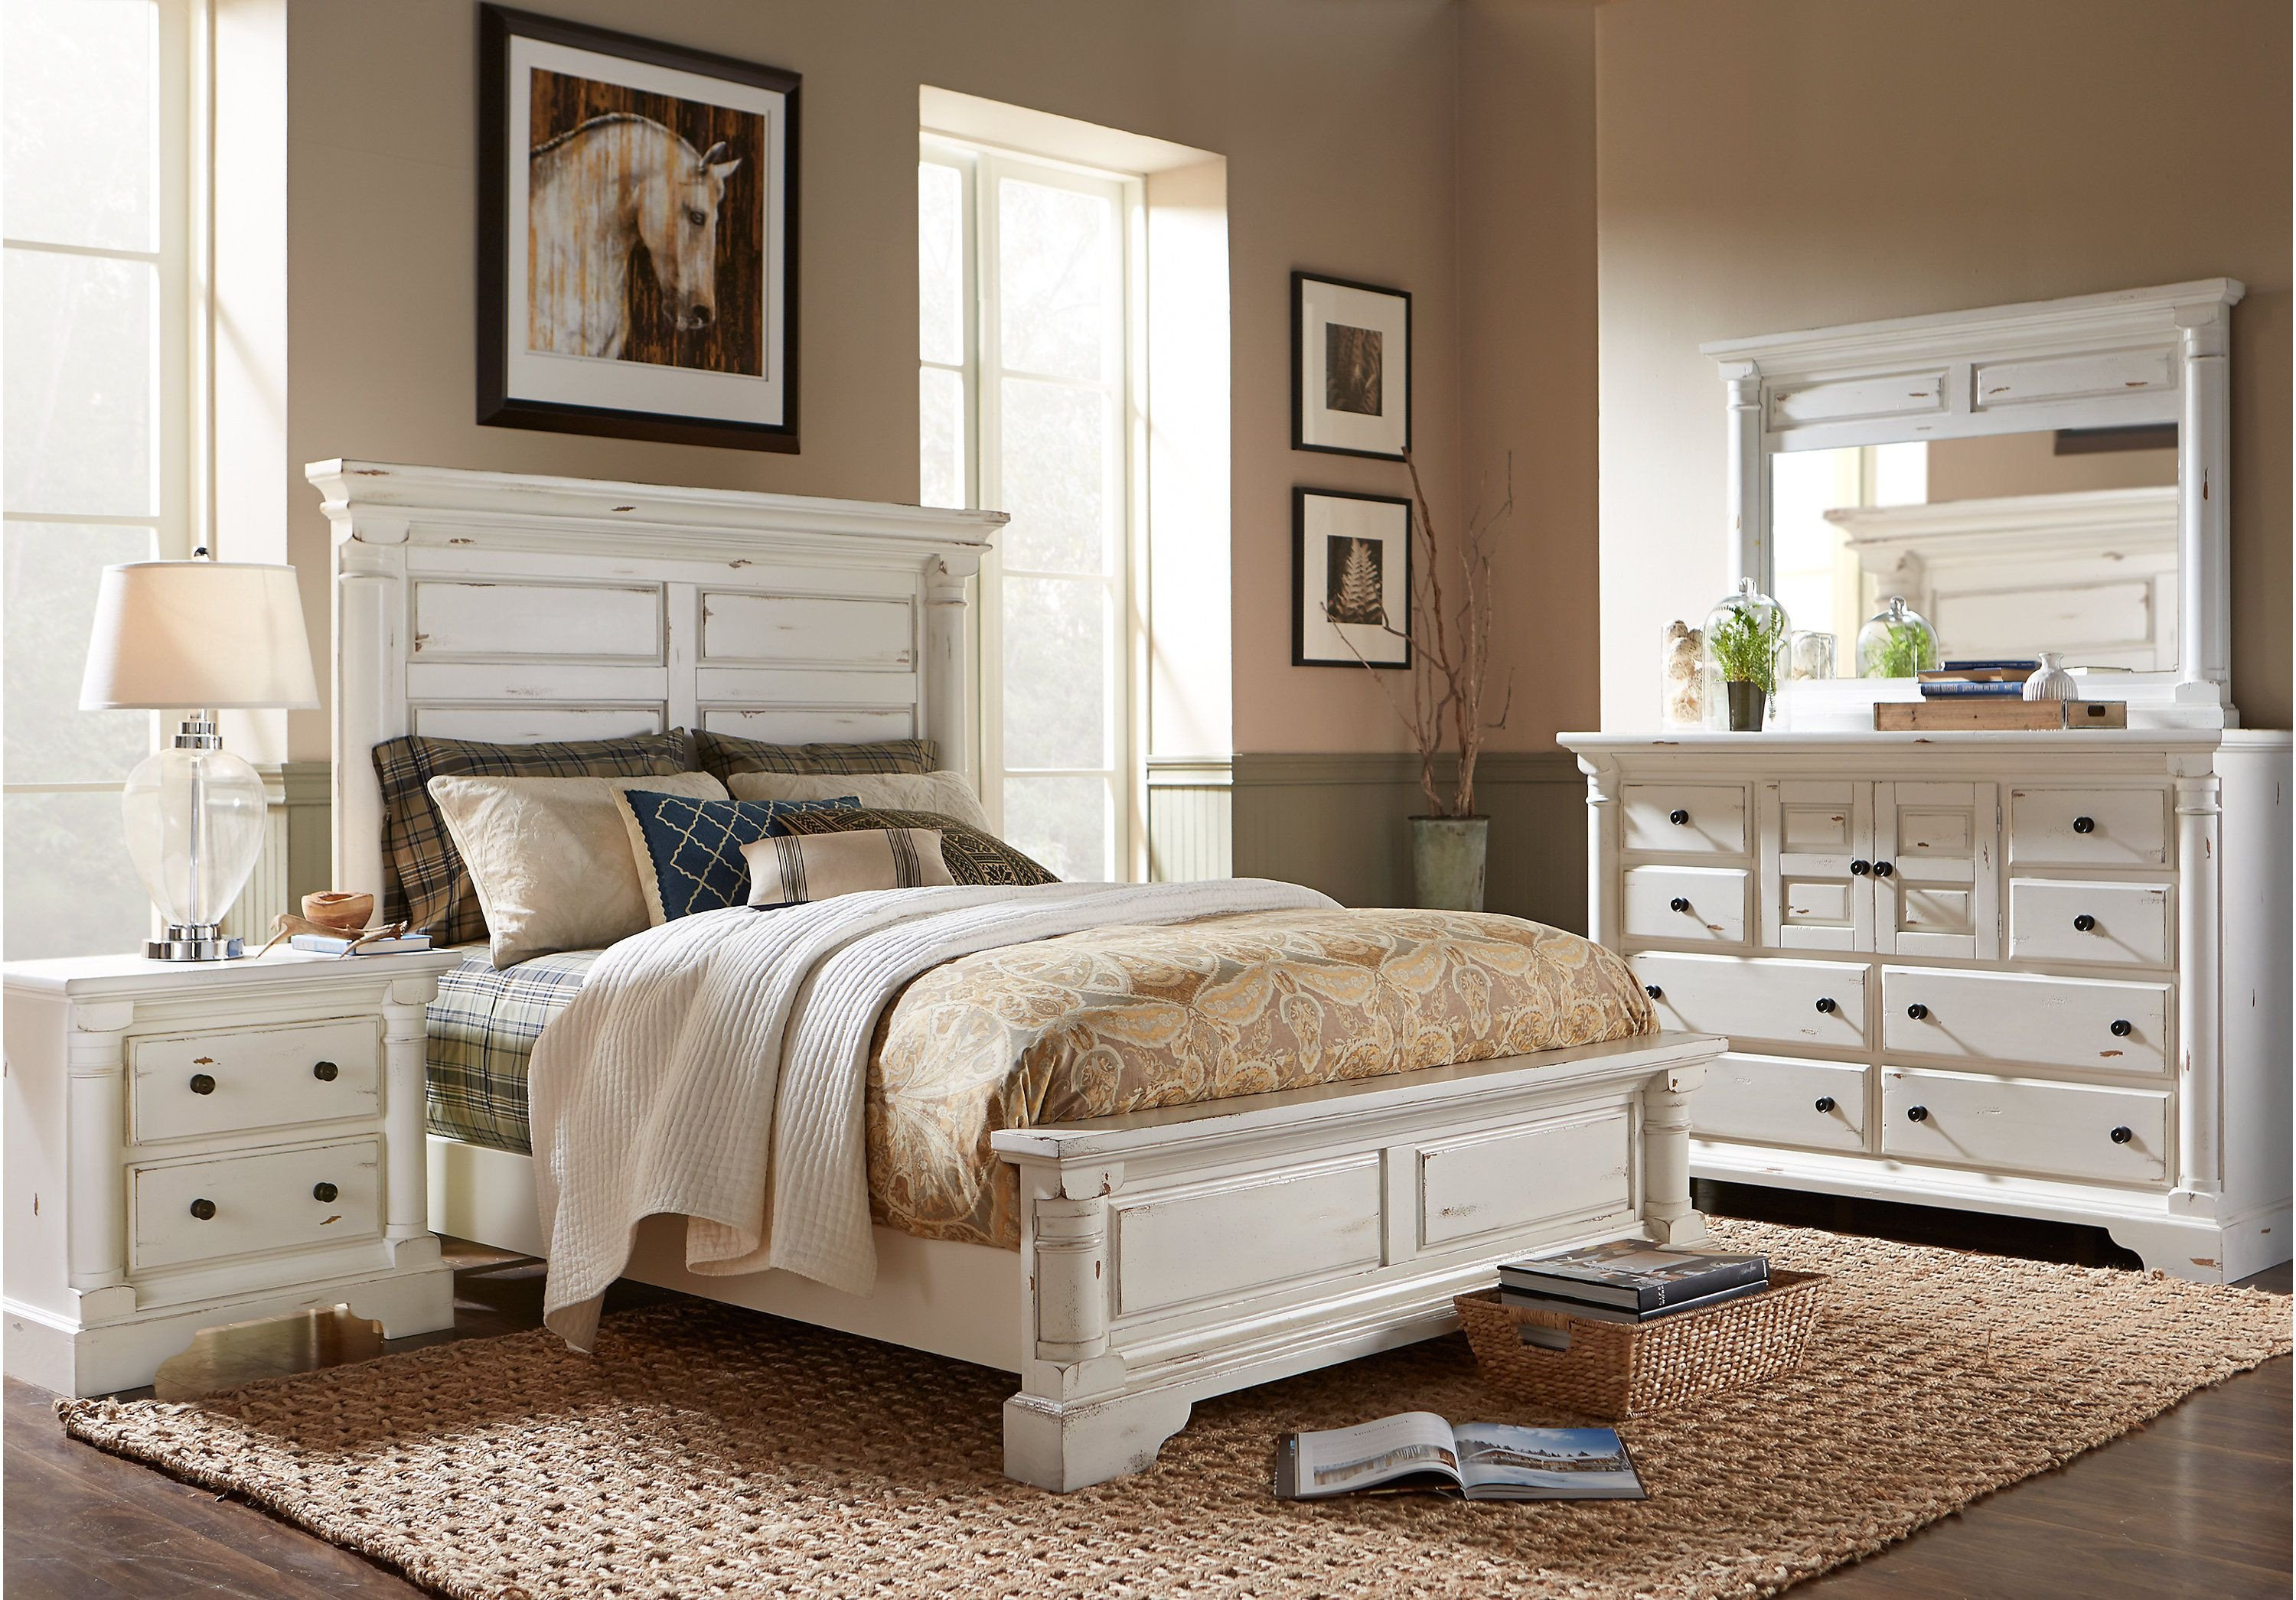 Twin Bedroom Set Ikea Elegant Bedroom Charming Roomstogokids with Beautiful Decor for